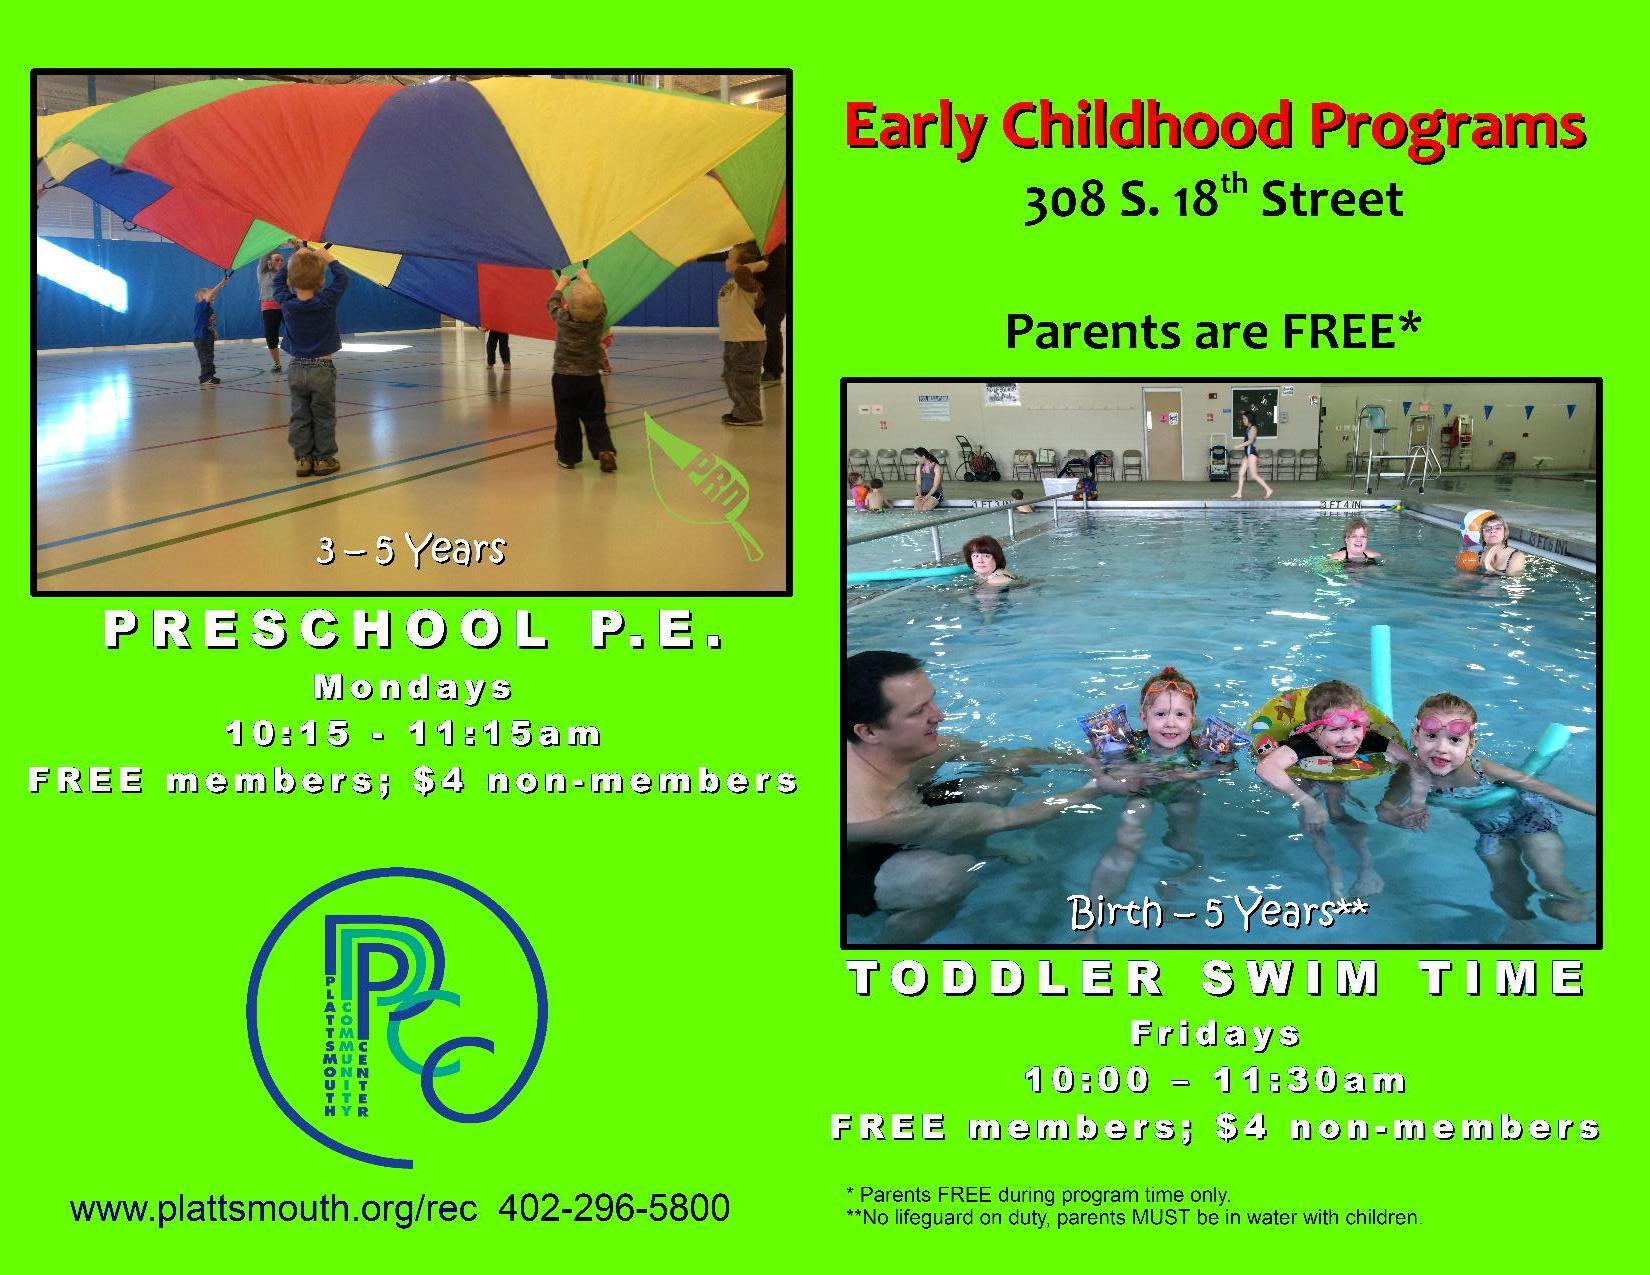 EarlyChildhoodPrograms